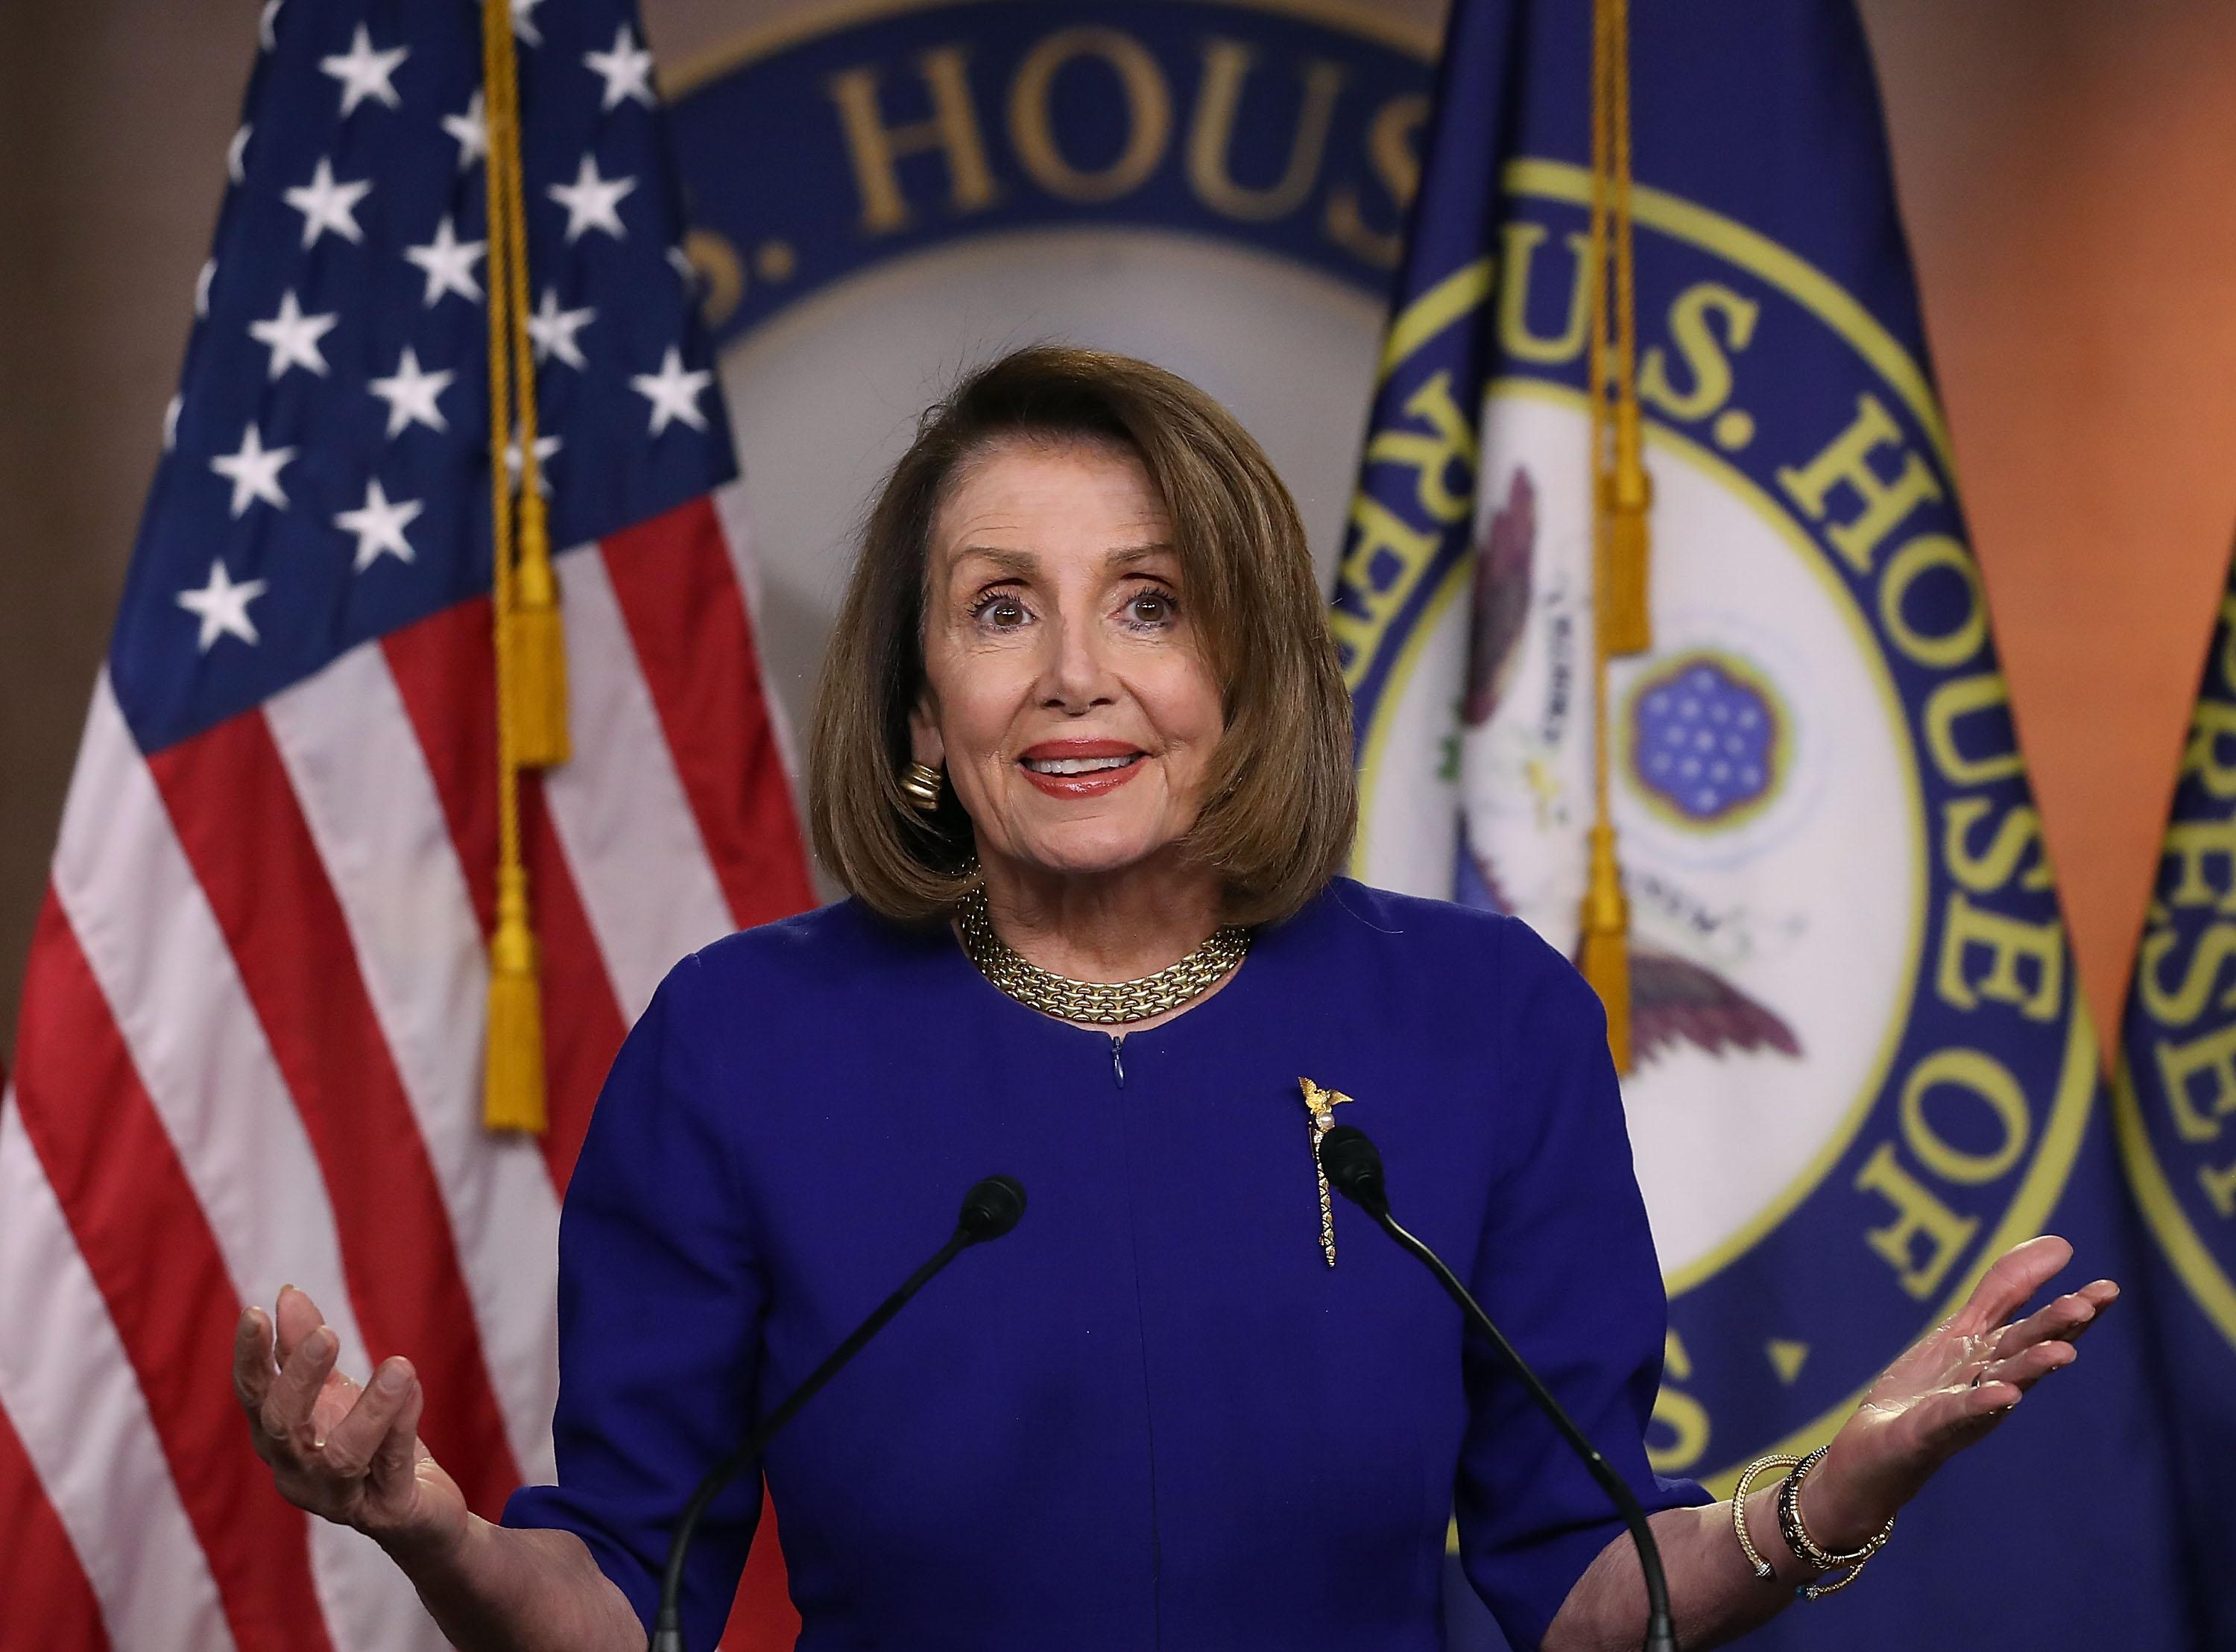 Speaker of the House Nancy Pelosi speaks during her weekly press conference on Feb. 7, 2019 in Washington, DC.